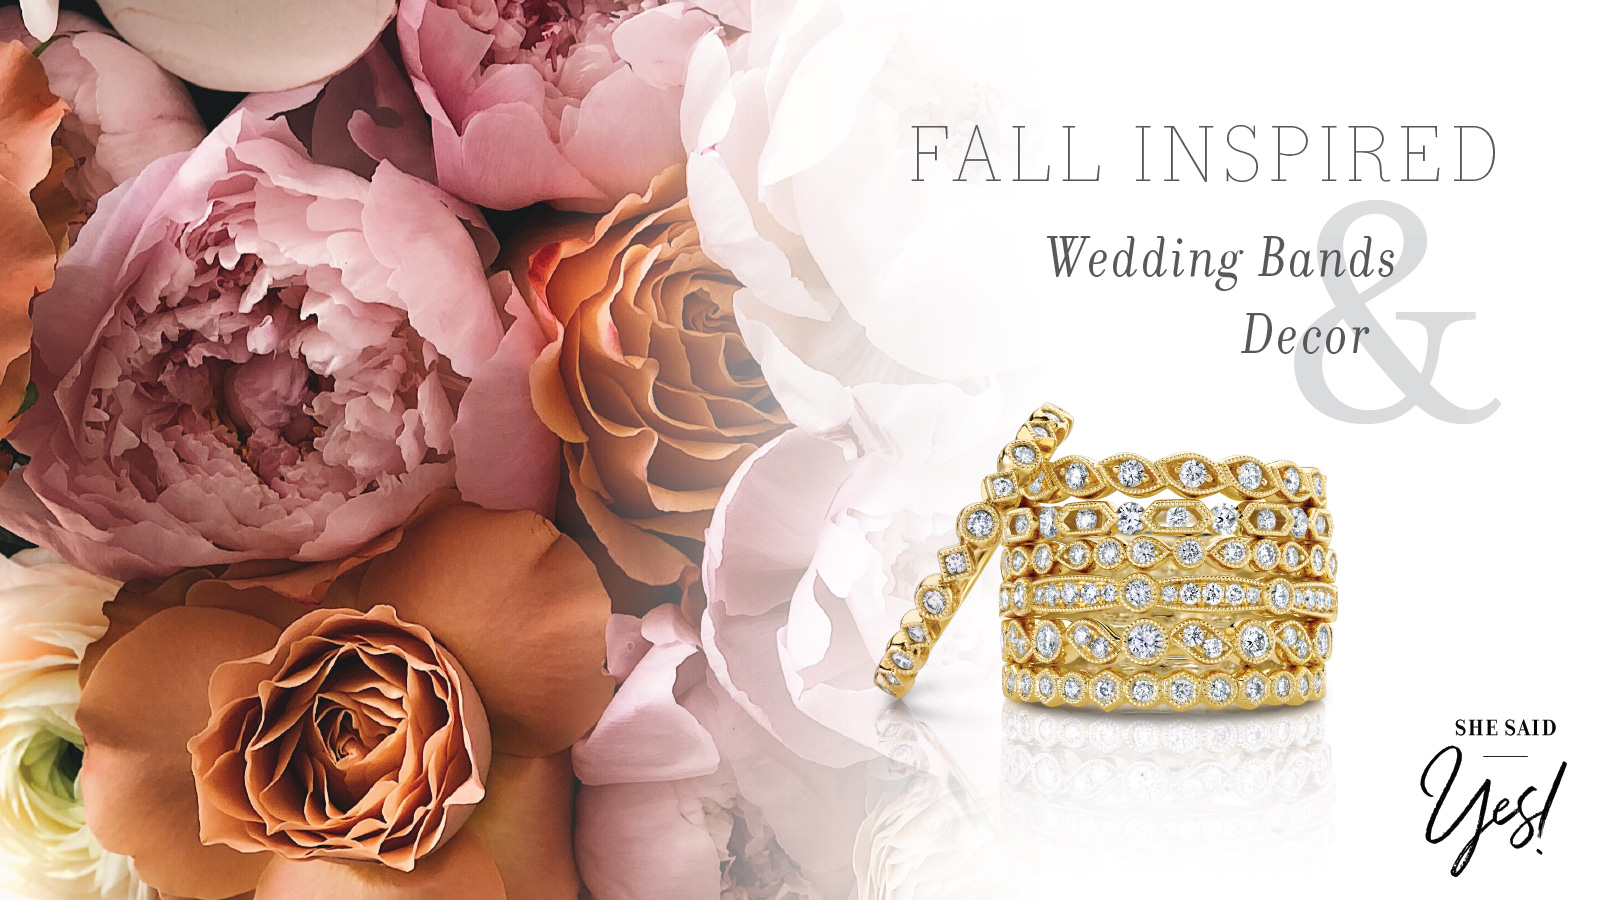 Fall Inspired Wedding Bands and Decor